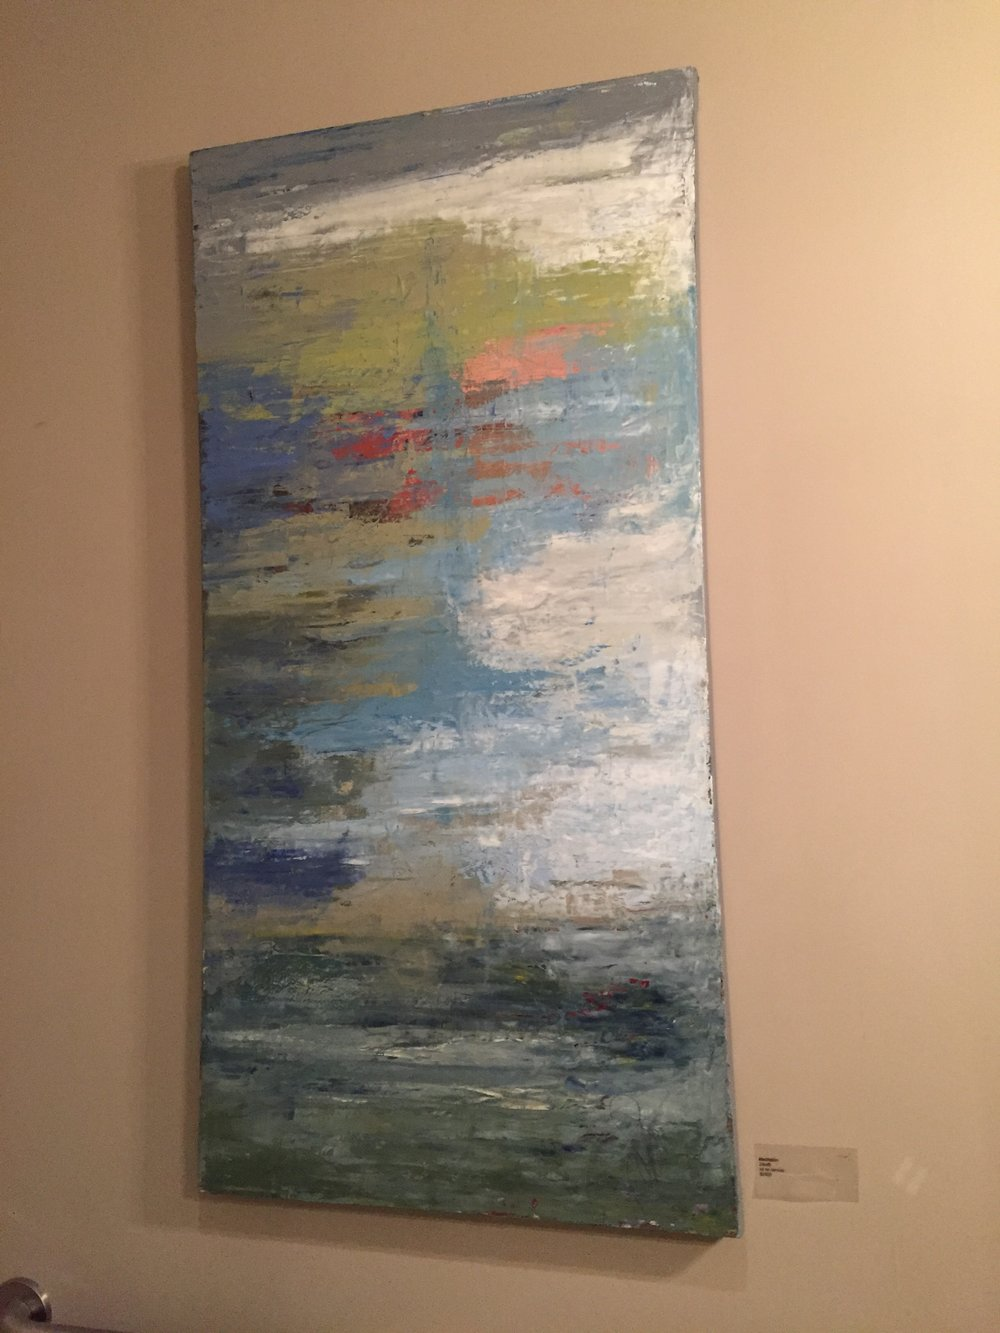 Meditation, 24x48, Oil on canvas, $2400